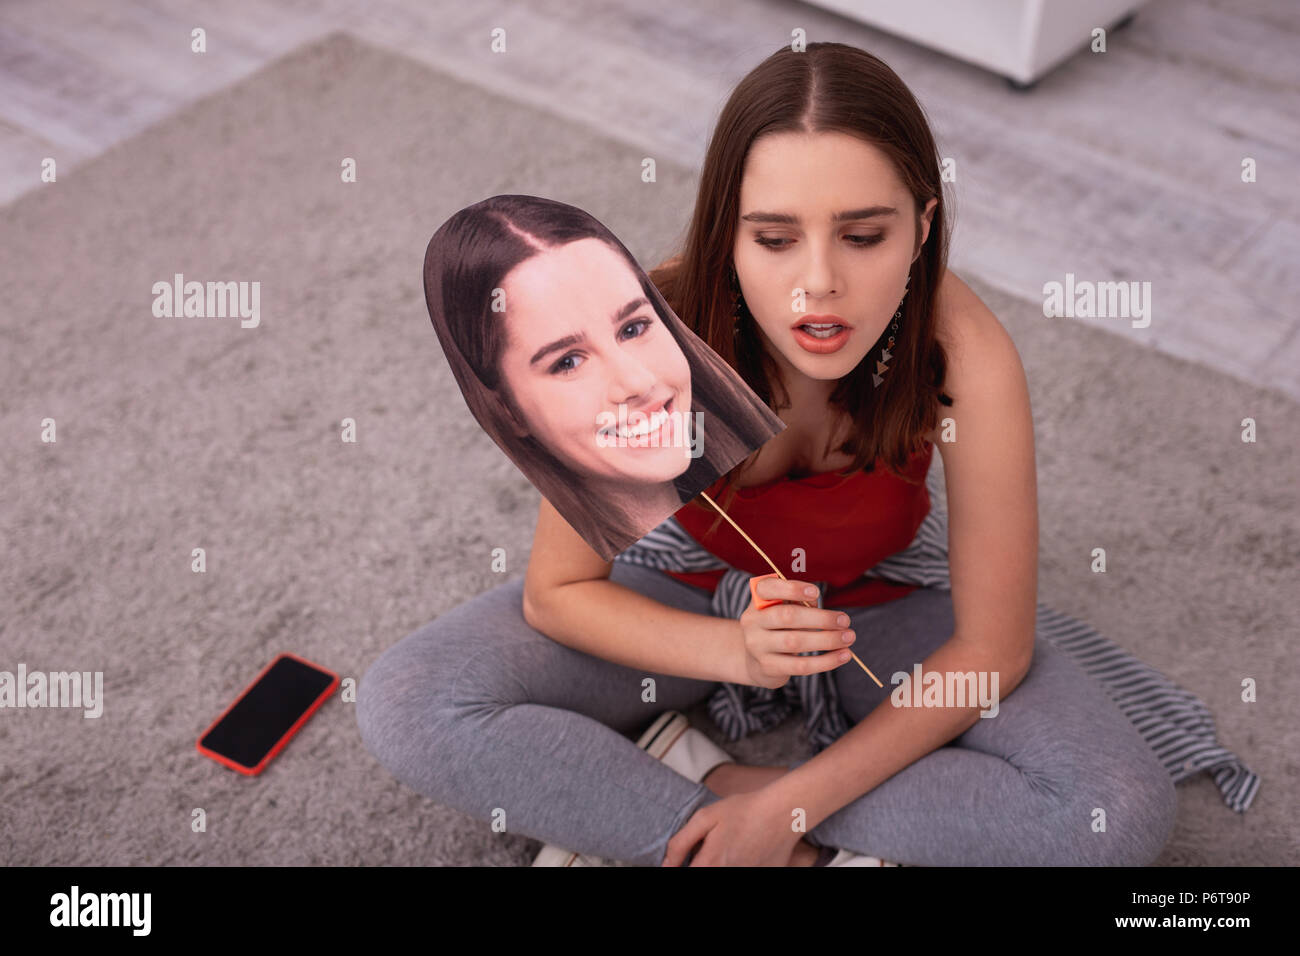 Hopeless teen girl suffering from depression - Stock Image